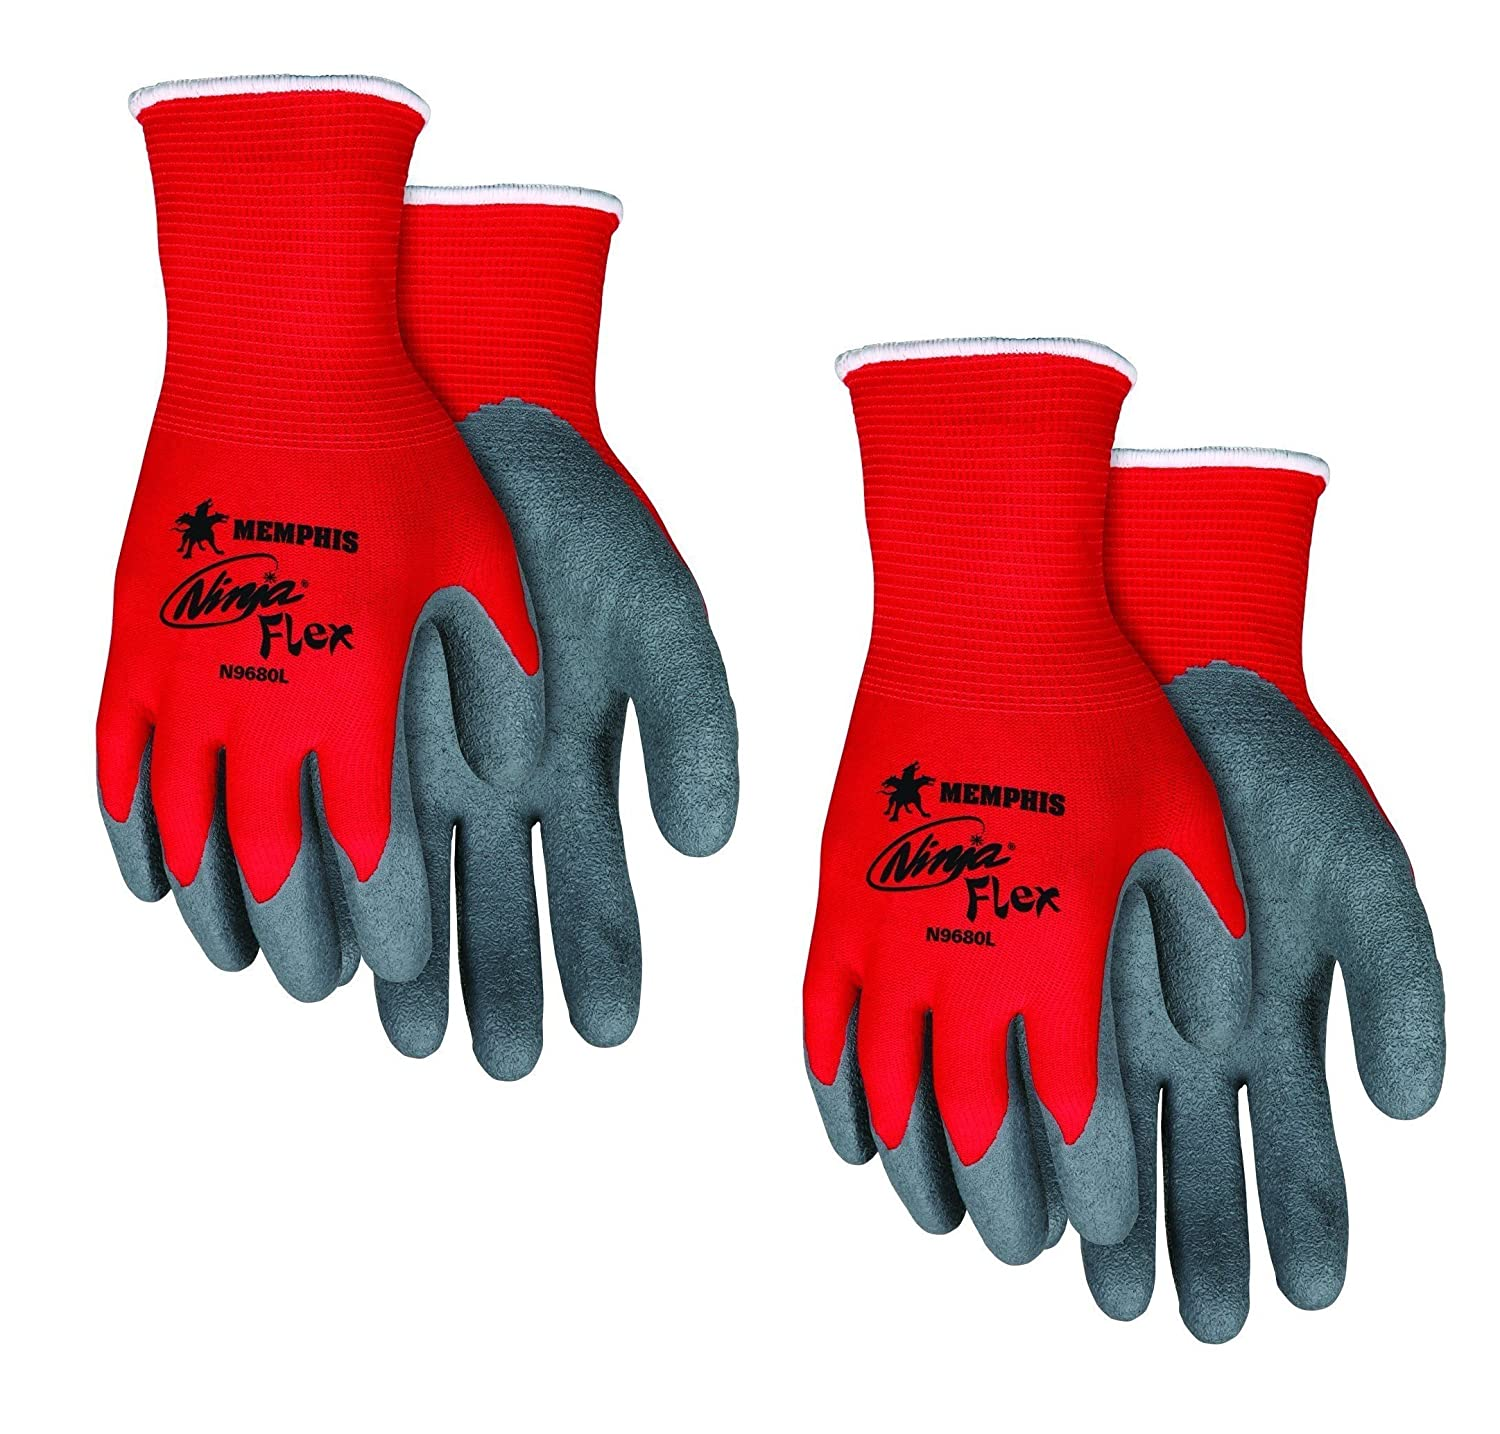 Memphis Glove N9680L Ninja Flex Nylon Shell Gloves with Latex Dip Palm and Fingertips, Gray/Red, Large, 2-Pair